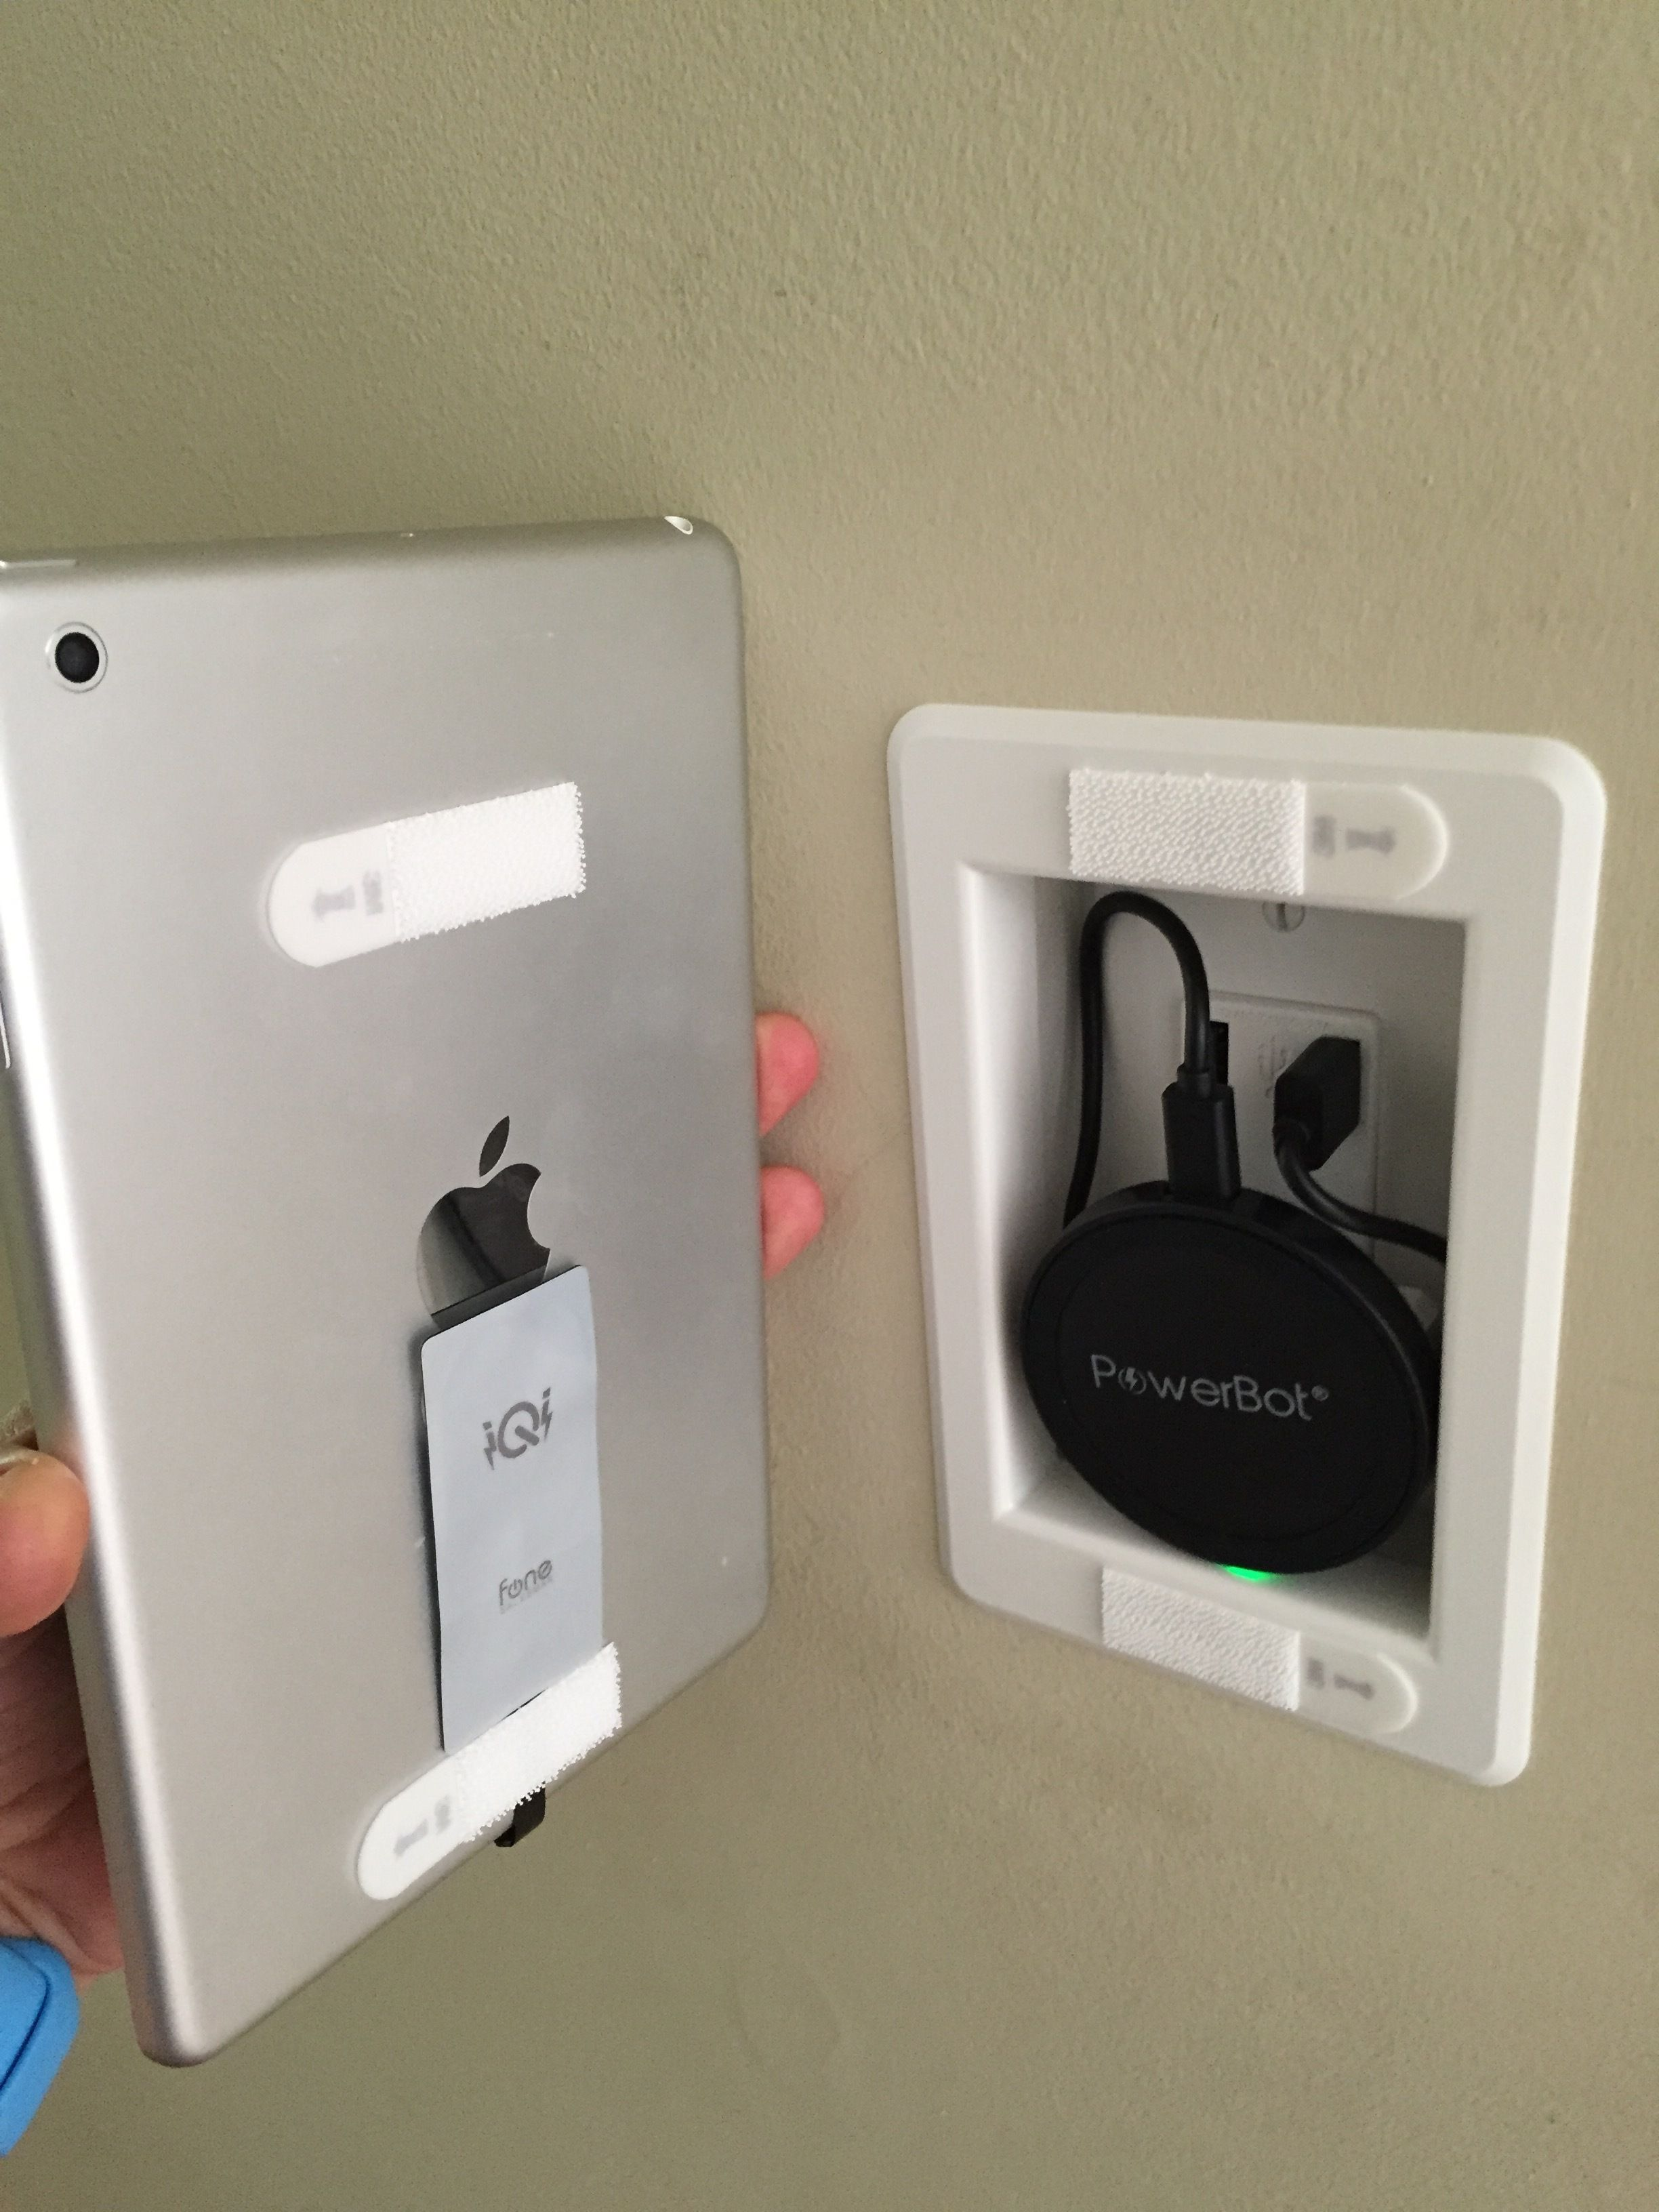 Tablet Wandhalterung Mit Ladefunktion The 25+ Best Ipad Wall Mount Ideas On Pinterest | Ipad